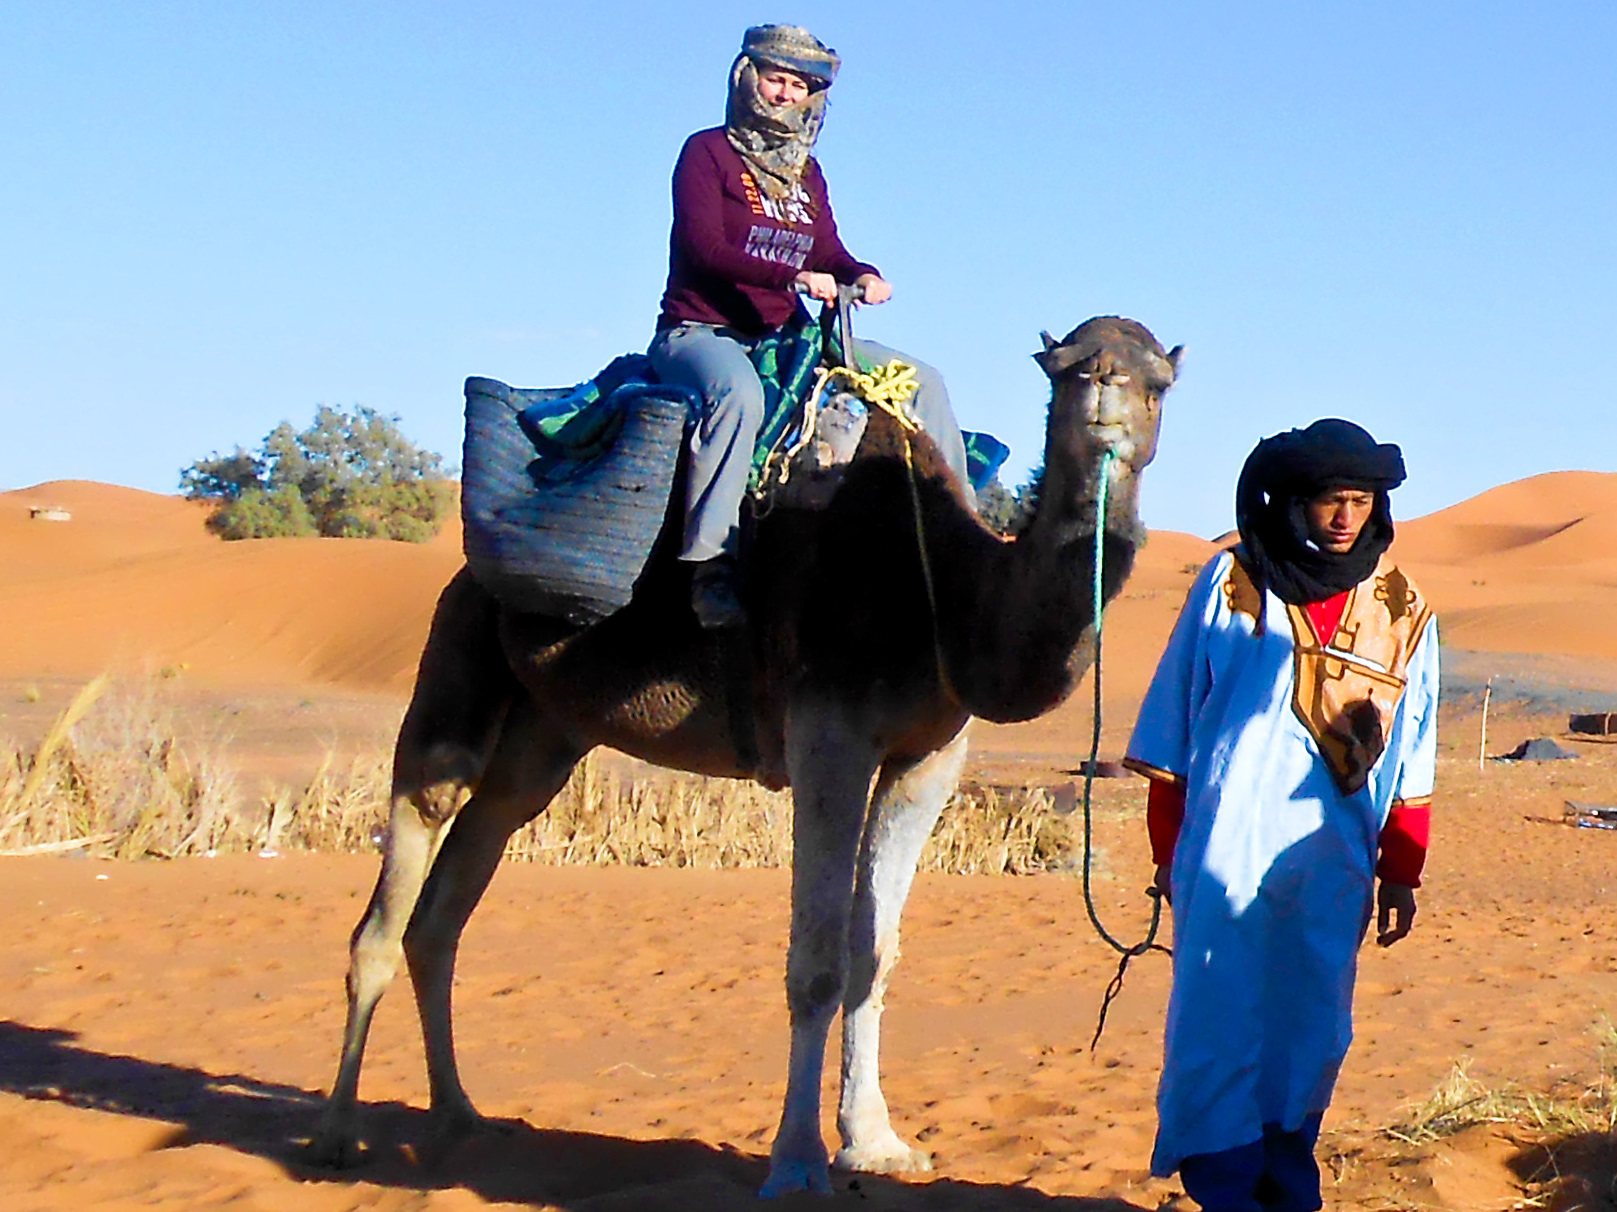 Camel Riding Morocco Desert